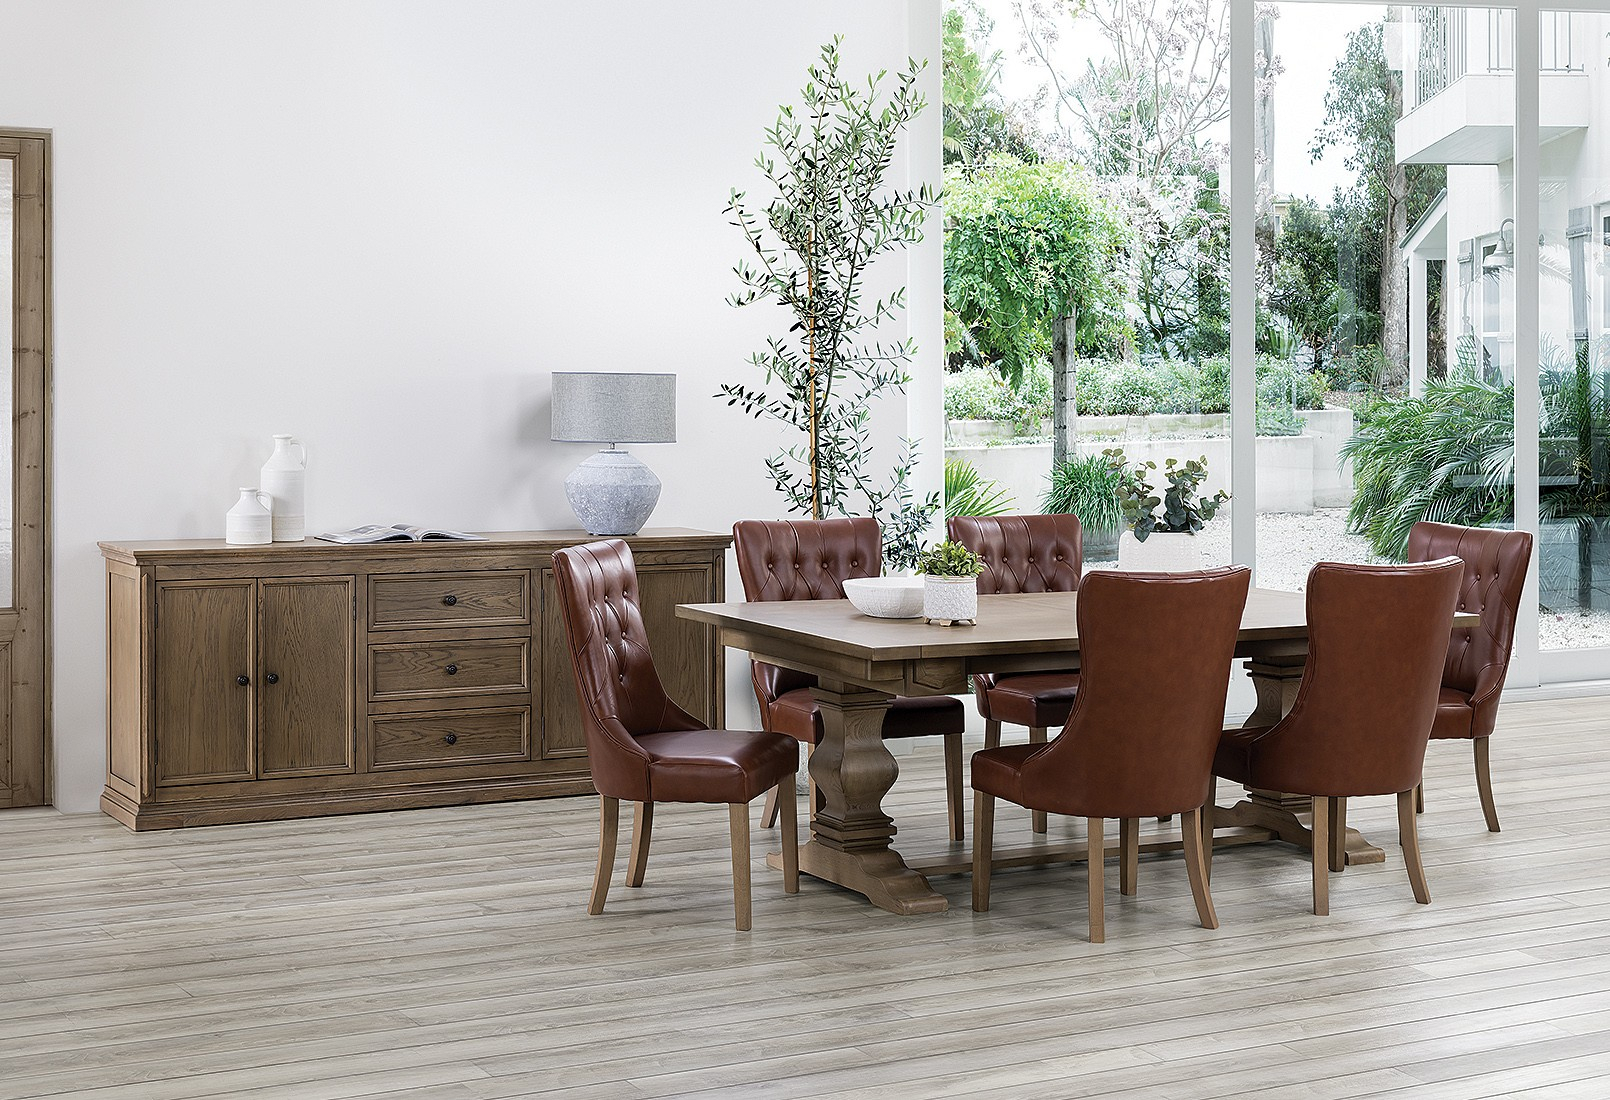 7 Piece Dining Sets | Amart Furniture Within Most Up To Date West Hill Family Table 3 Piece Dining Sets (View 16 of 20)